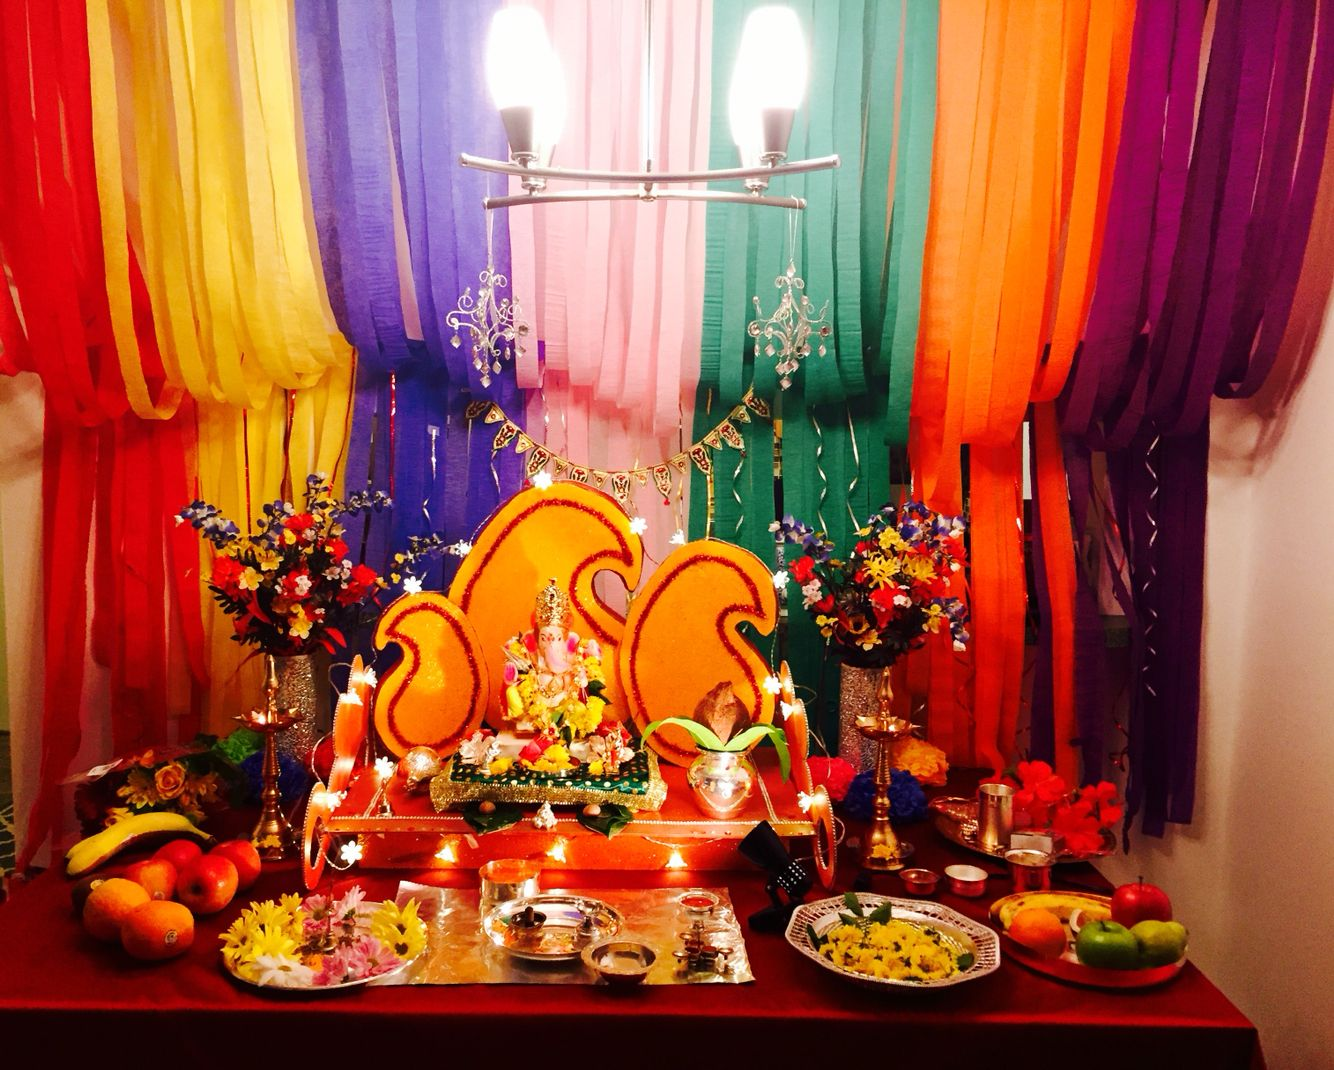 Ganpati Decoration For Home For The Home Pinterest Decoration Paper Ribbon And Diwali: home decorations for diwali